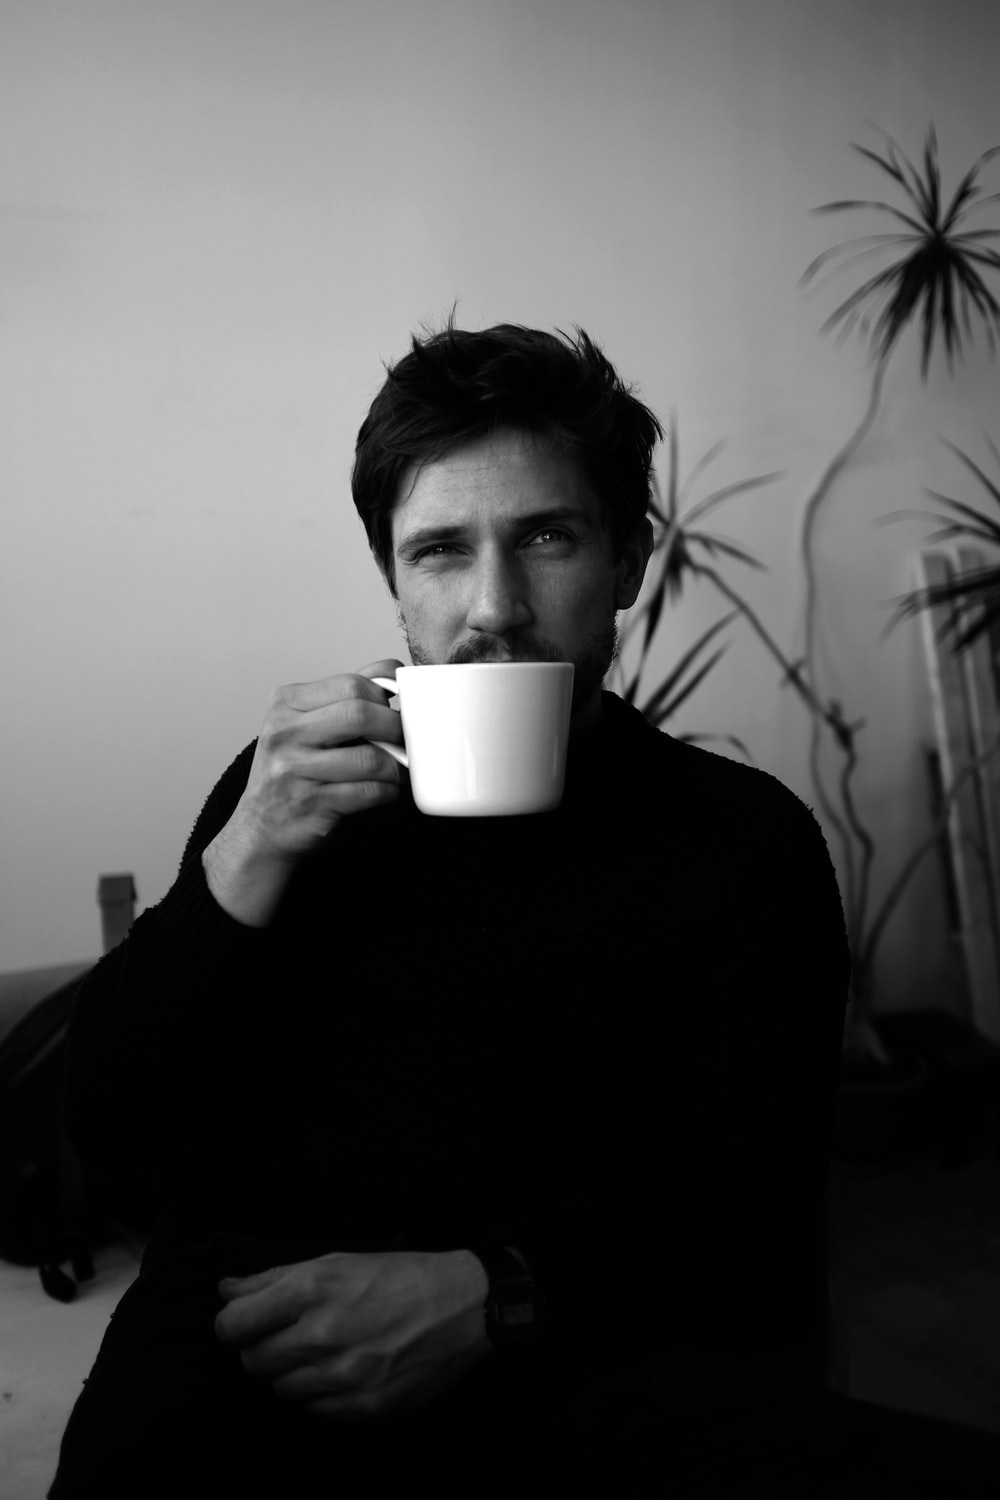 grayscale photo of man holding cup